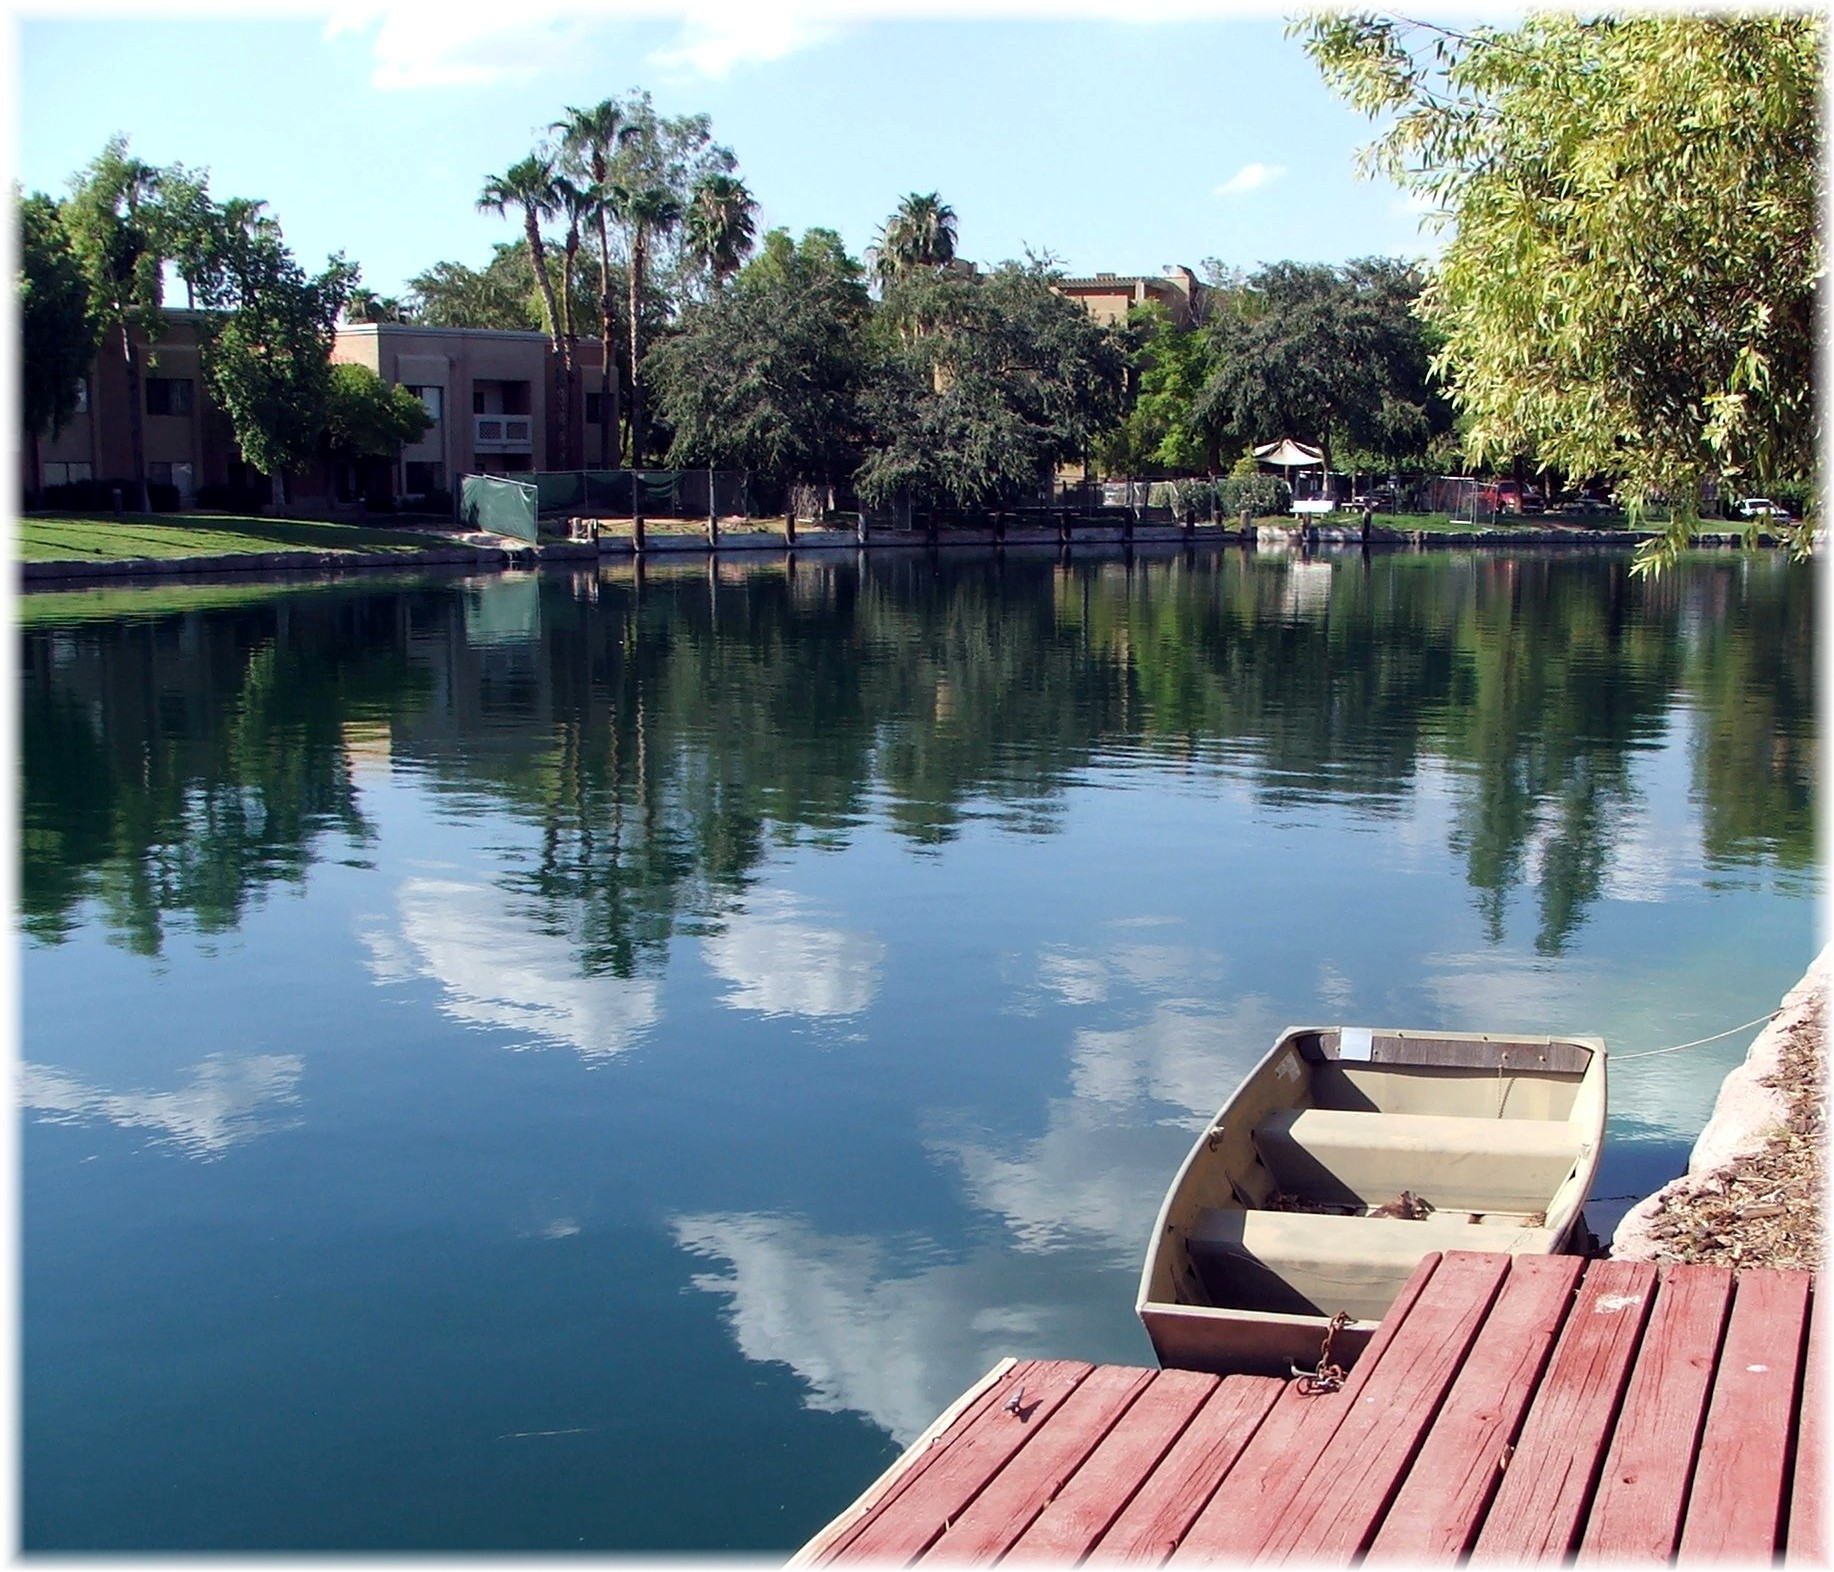 Lakefront Homes: The Lakes In Tempe Waterfront Property And Homes For Sale